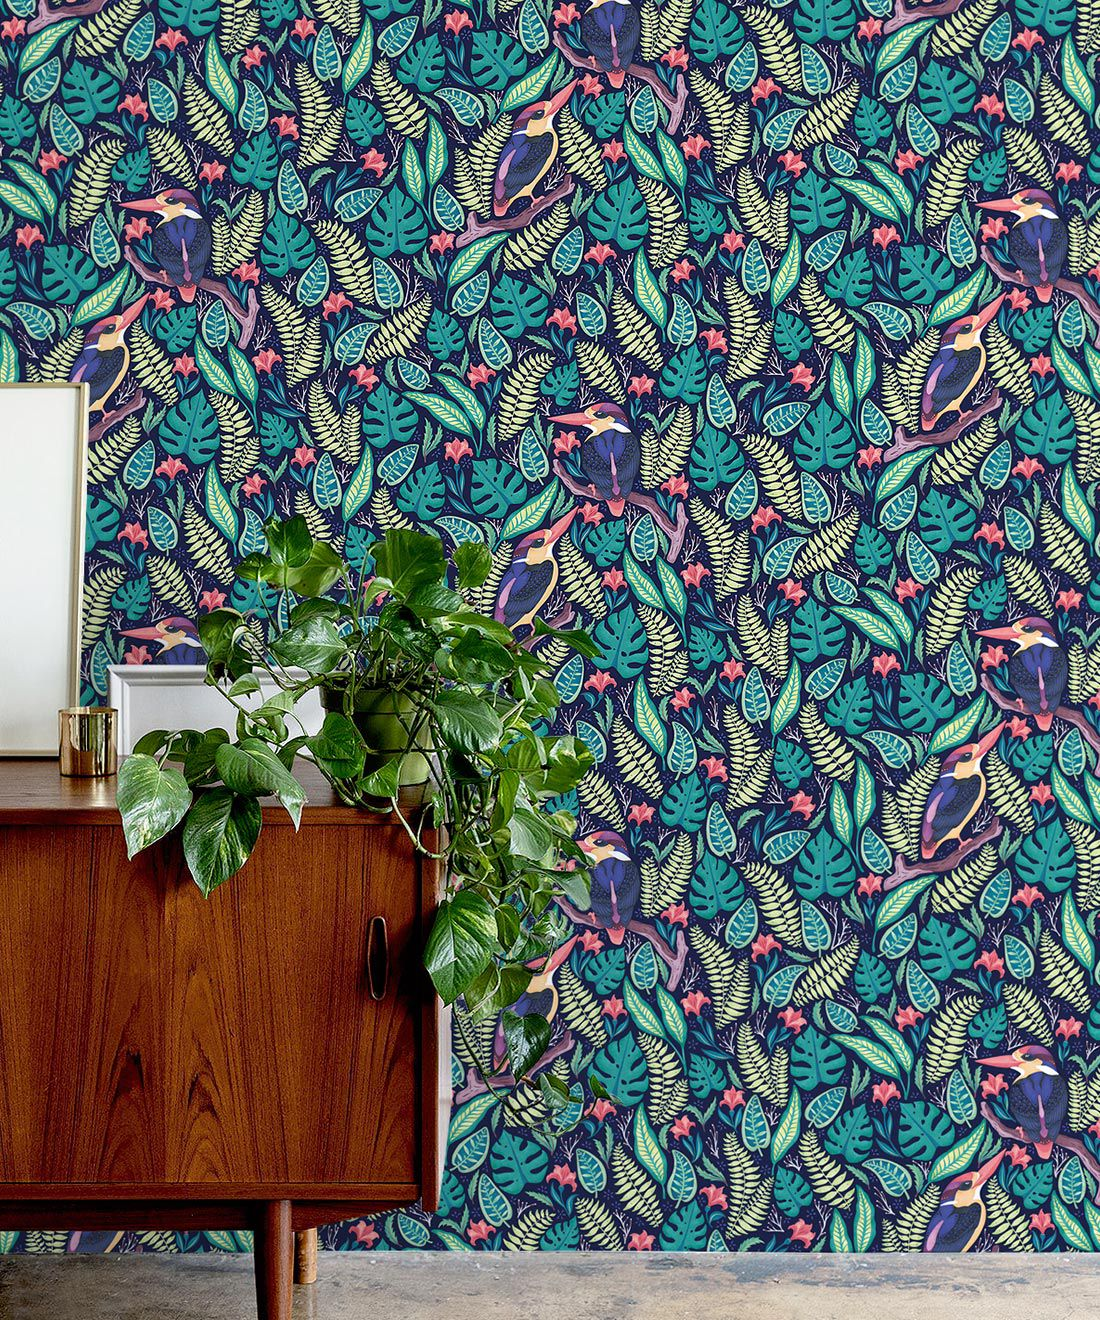 Kingfisher Wallpaper • Bird Wallpaper • Bright Neon Wallpaper Insitu